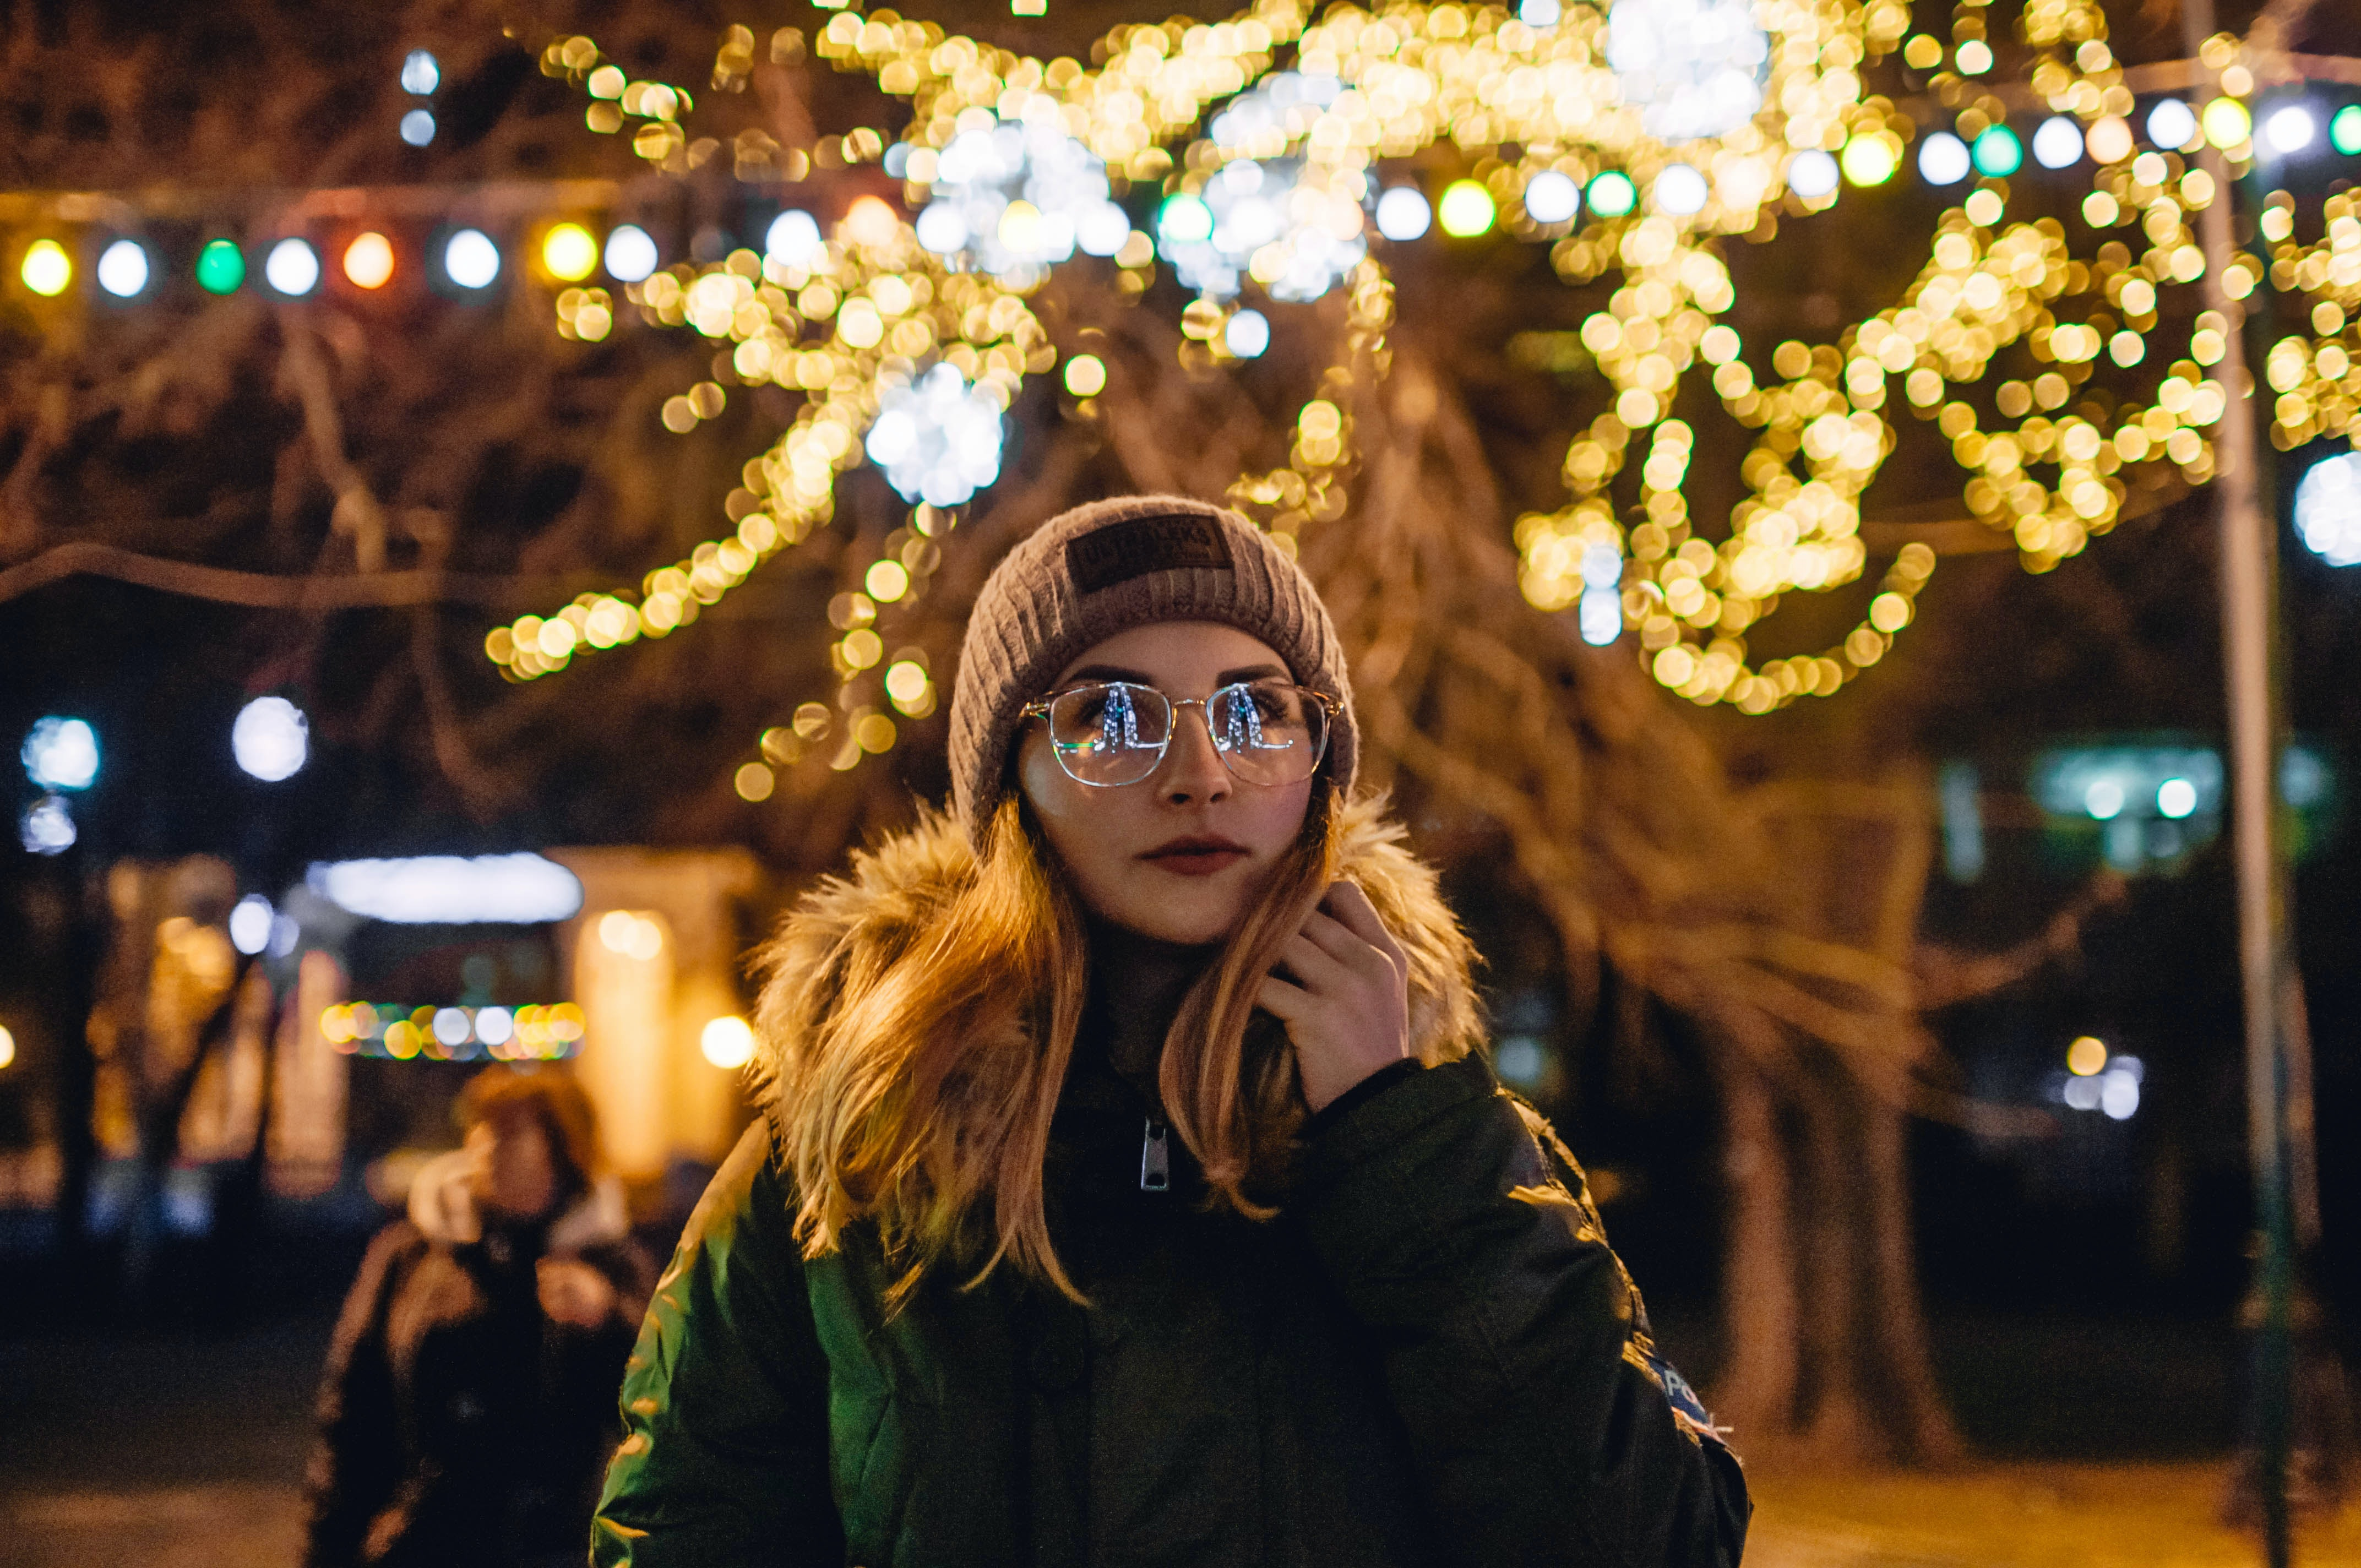 30 Fairy Lights Captions For Instagram That Are So Merry & Bright